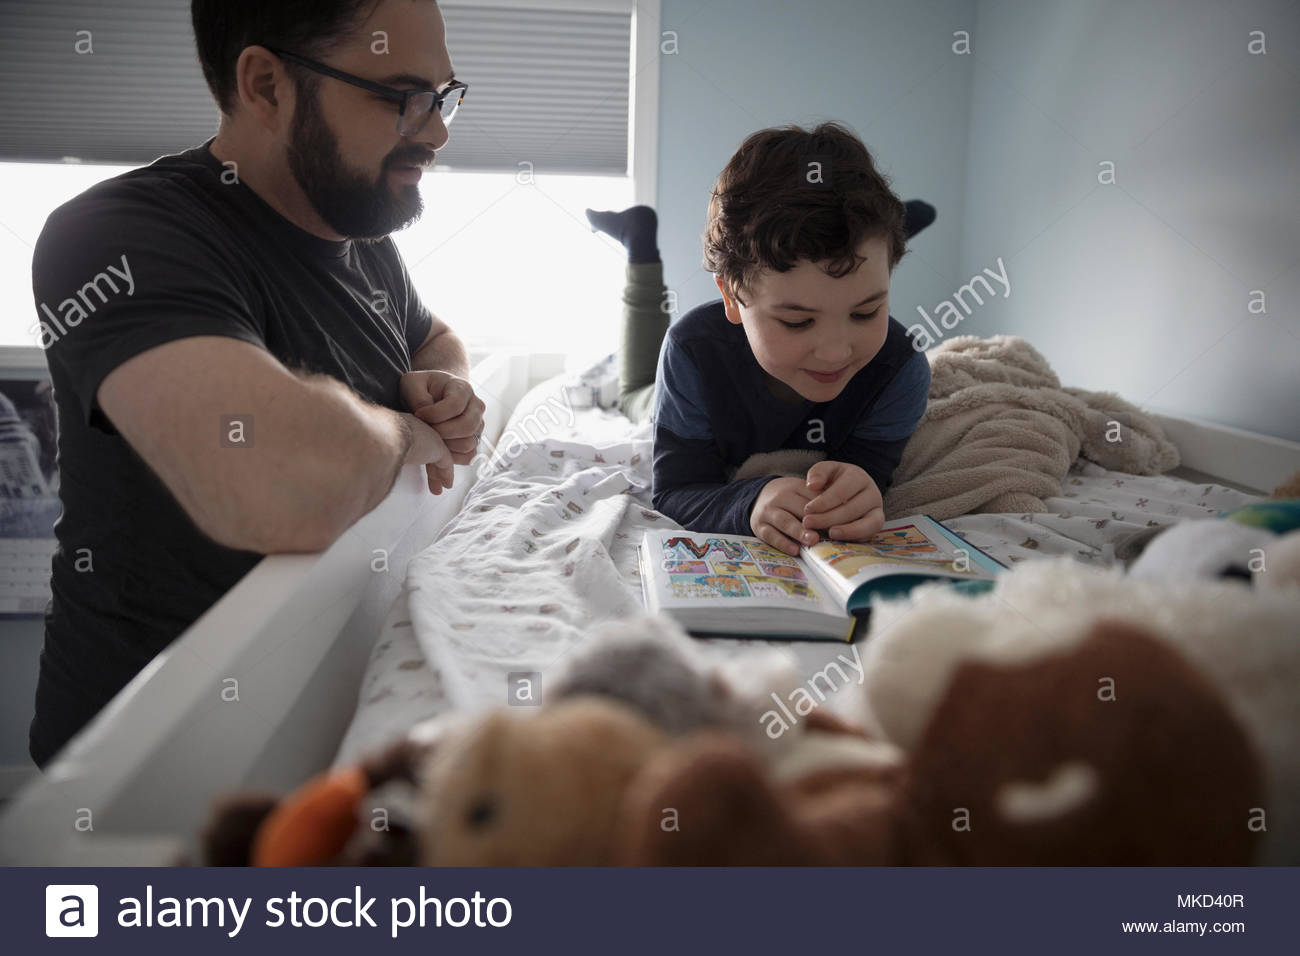 Father and son reading bedtime story on bunk bed - Stock Image